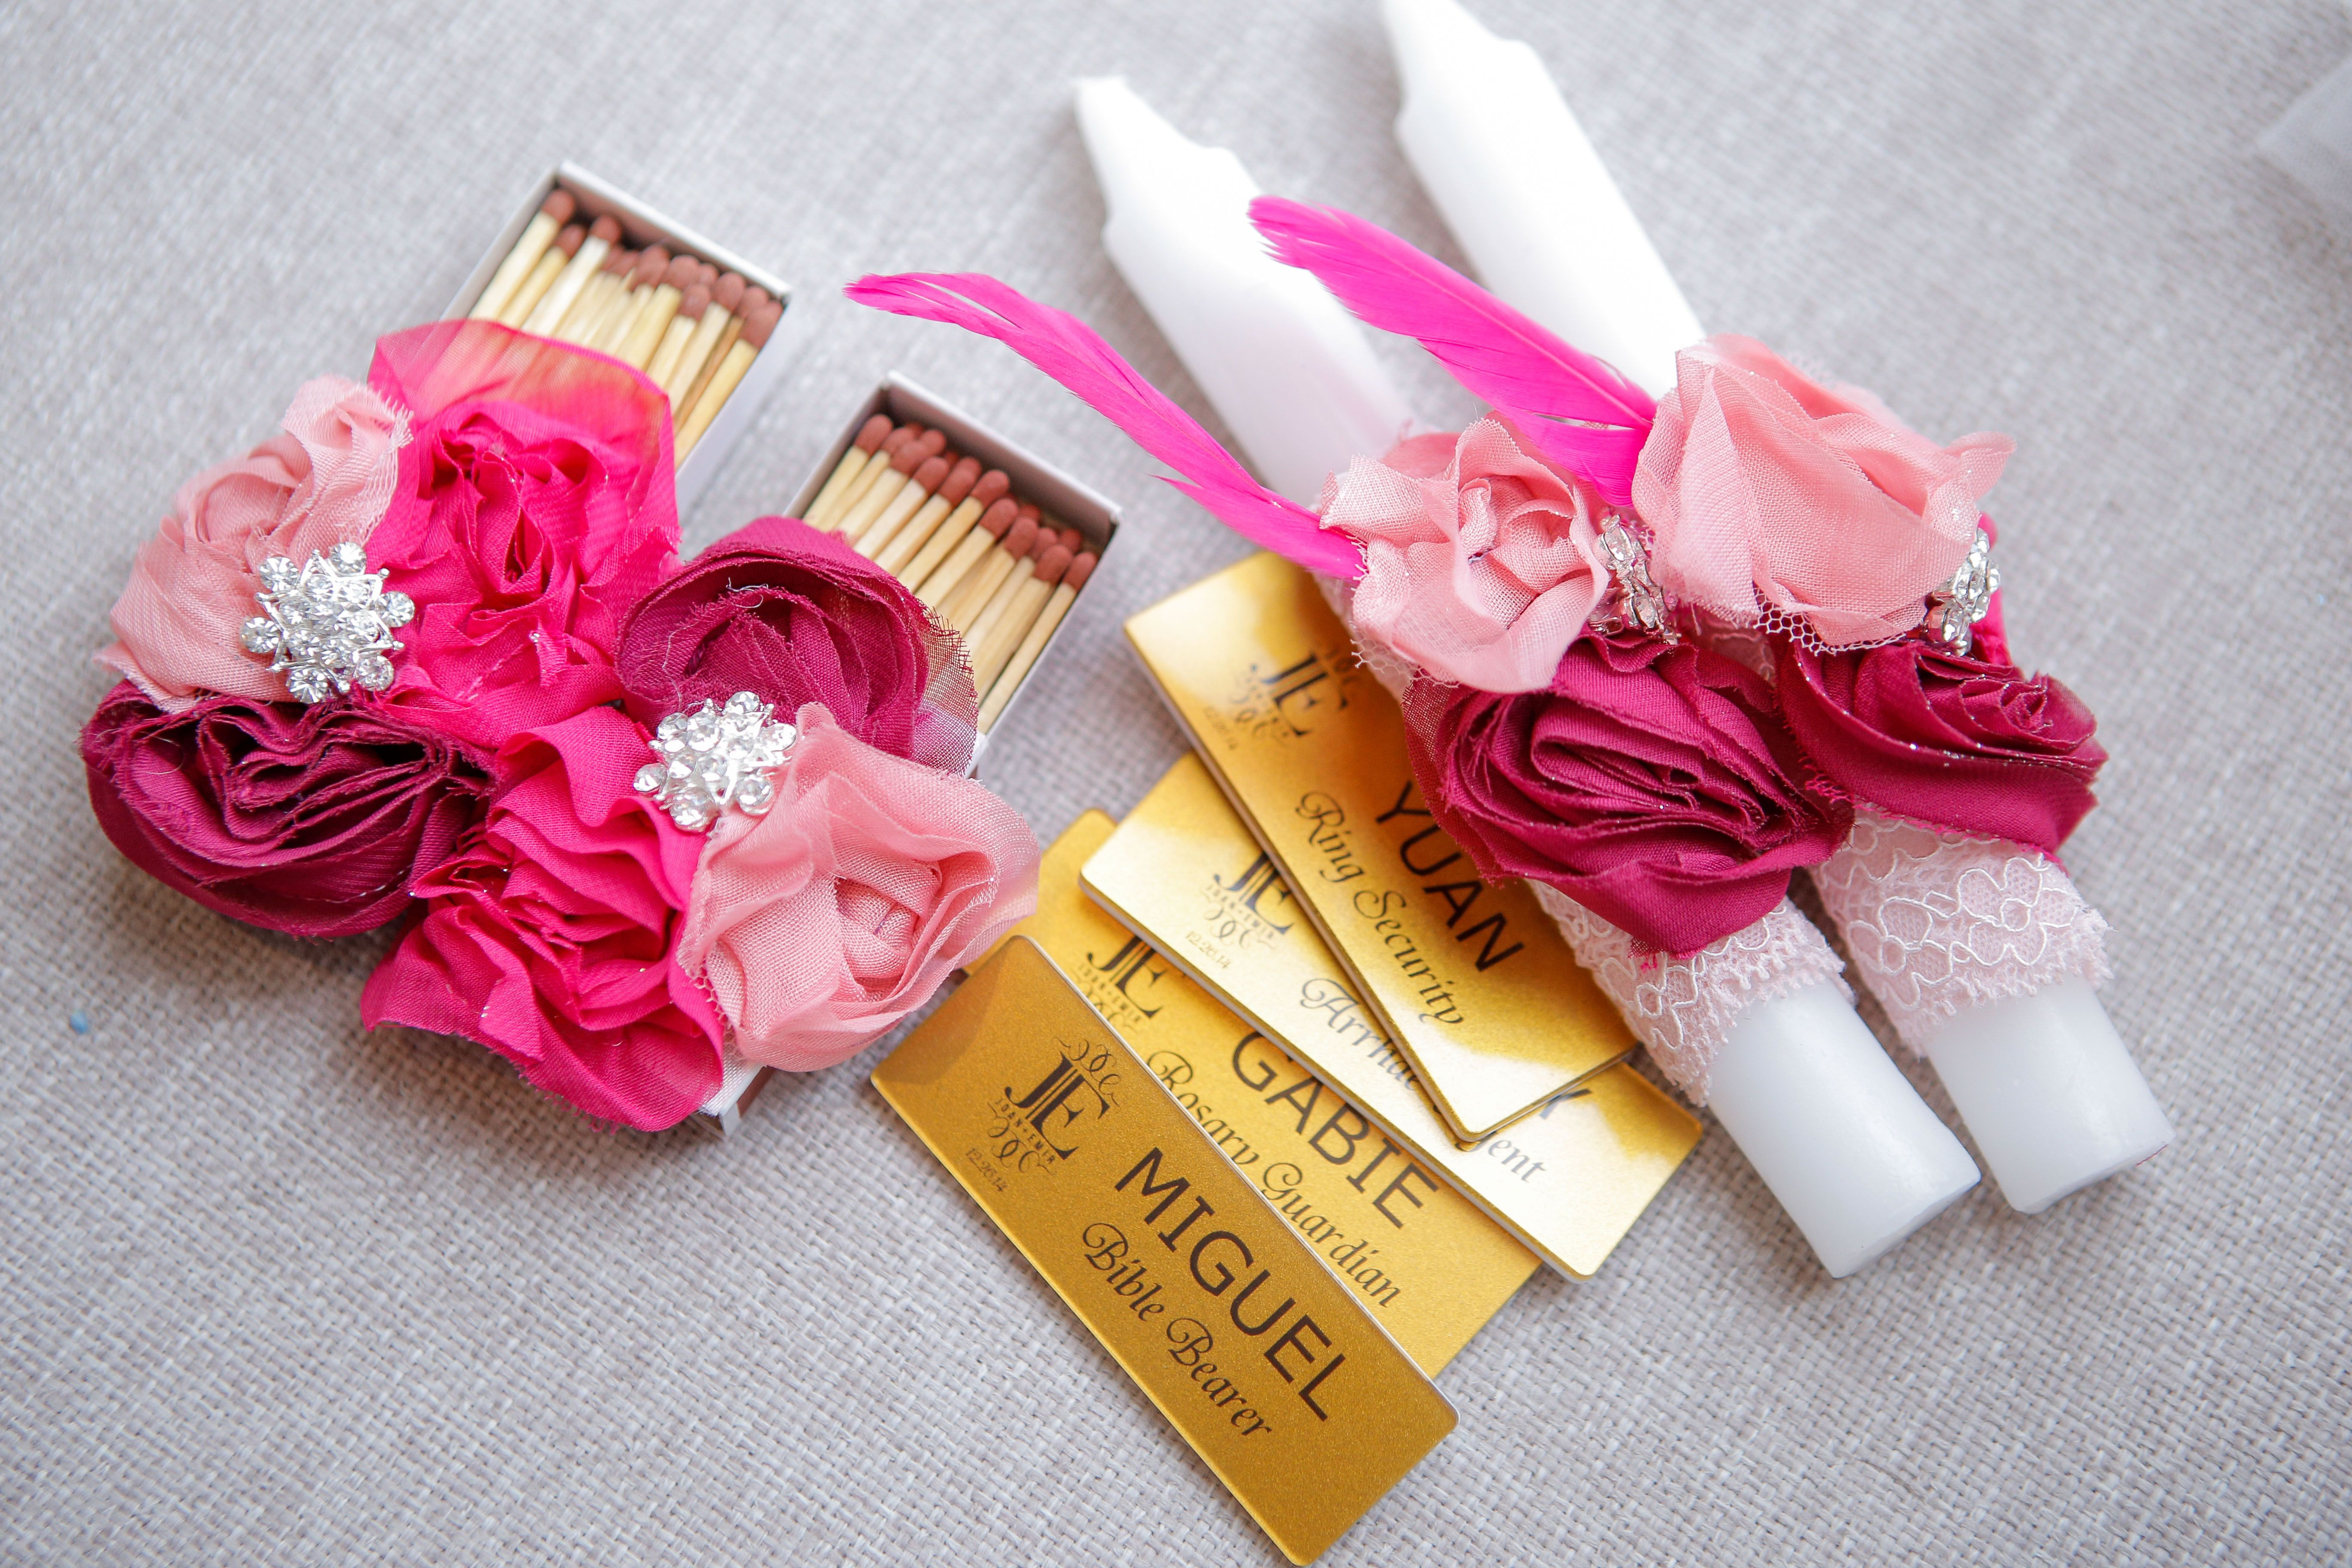 Matching Matches and Candles, shades of pink, name tags for bearers ...